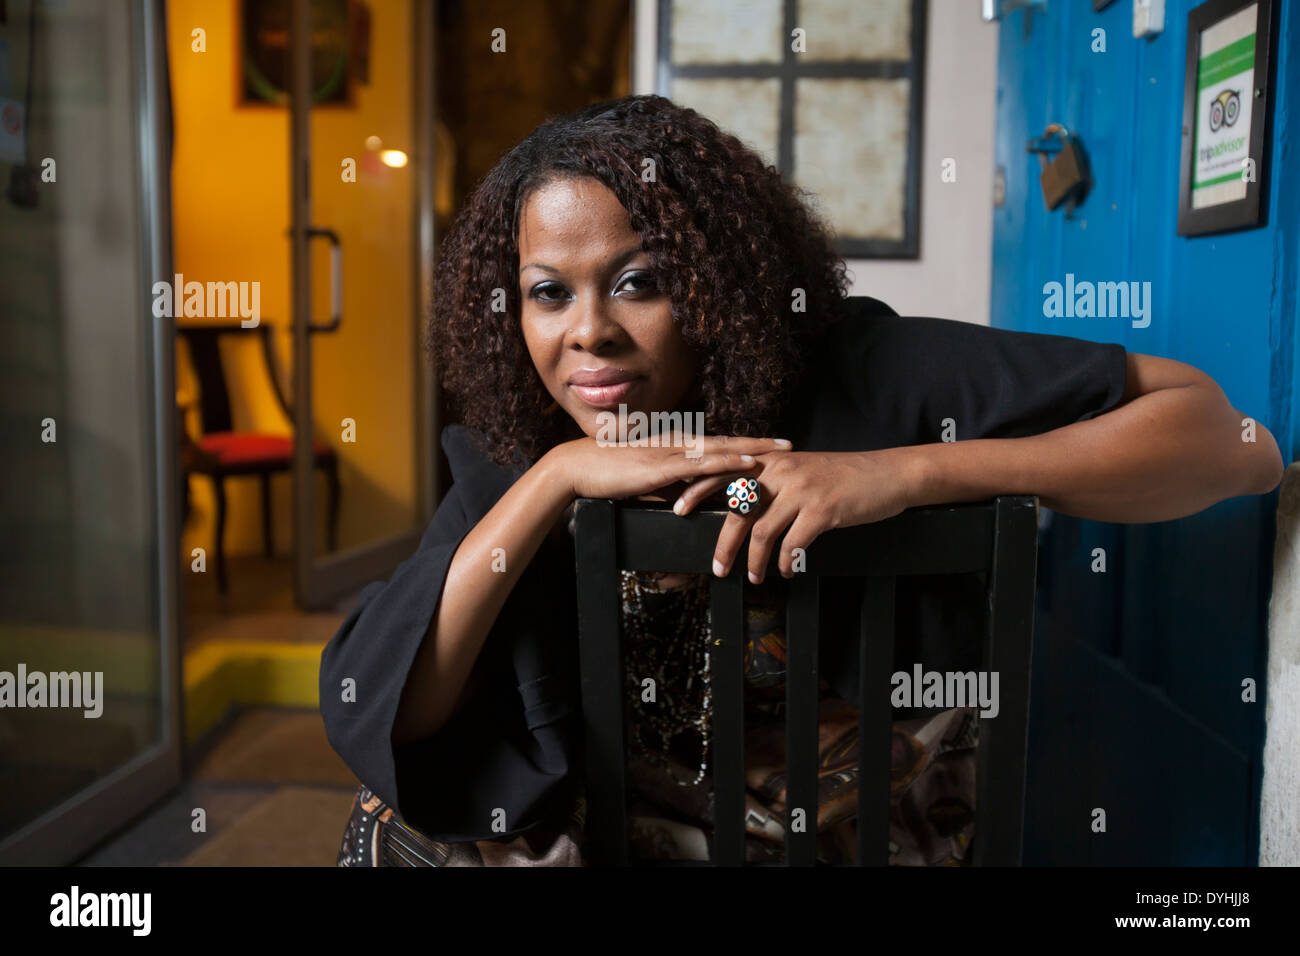 Tania Tome, singer and businesswoman from Mozambique. - Stock Image